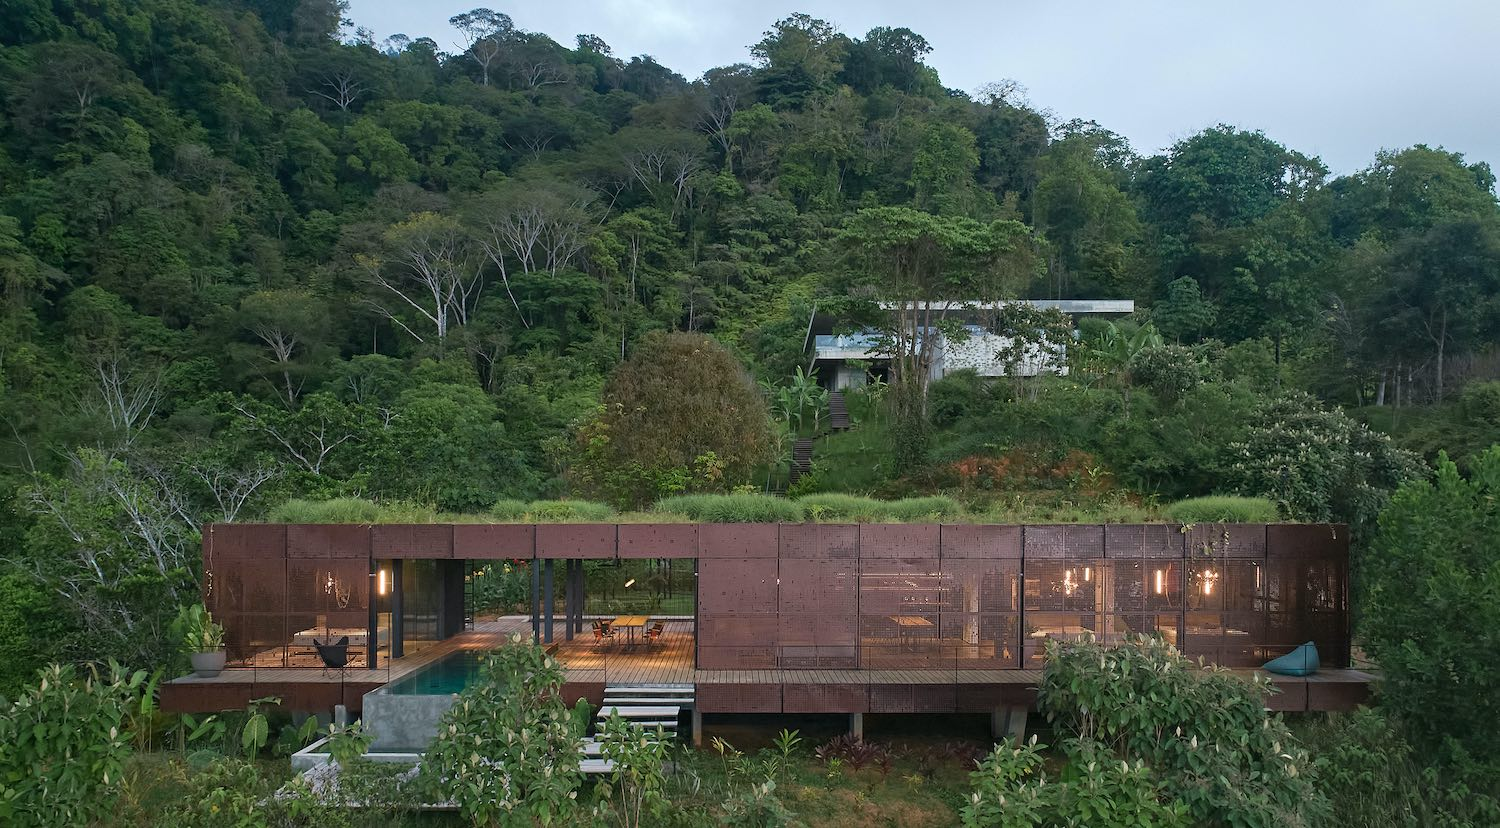 villa in a tropical rainforest surrounded by trees